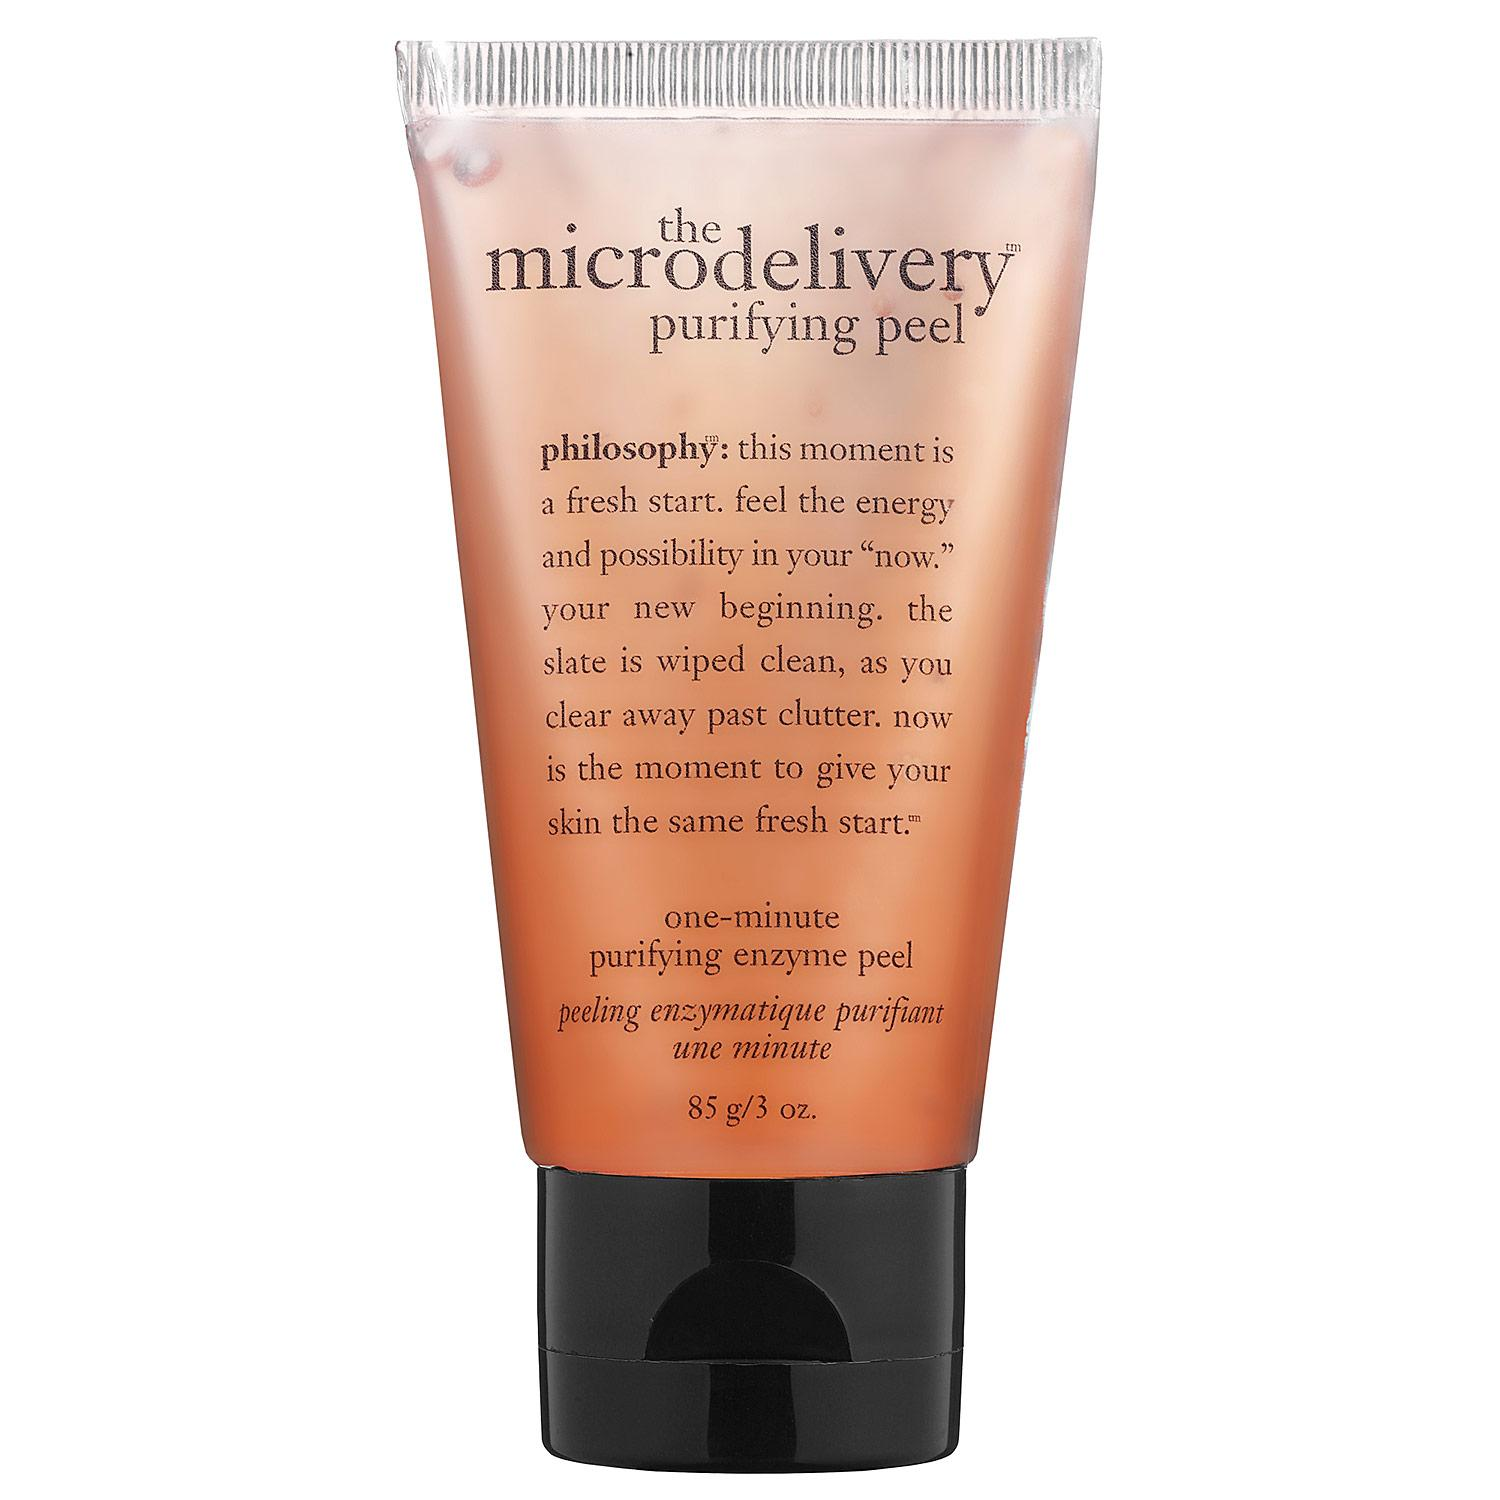 The Microdelivery Purifying Peel One-Minute Purifying Enzyme Peel